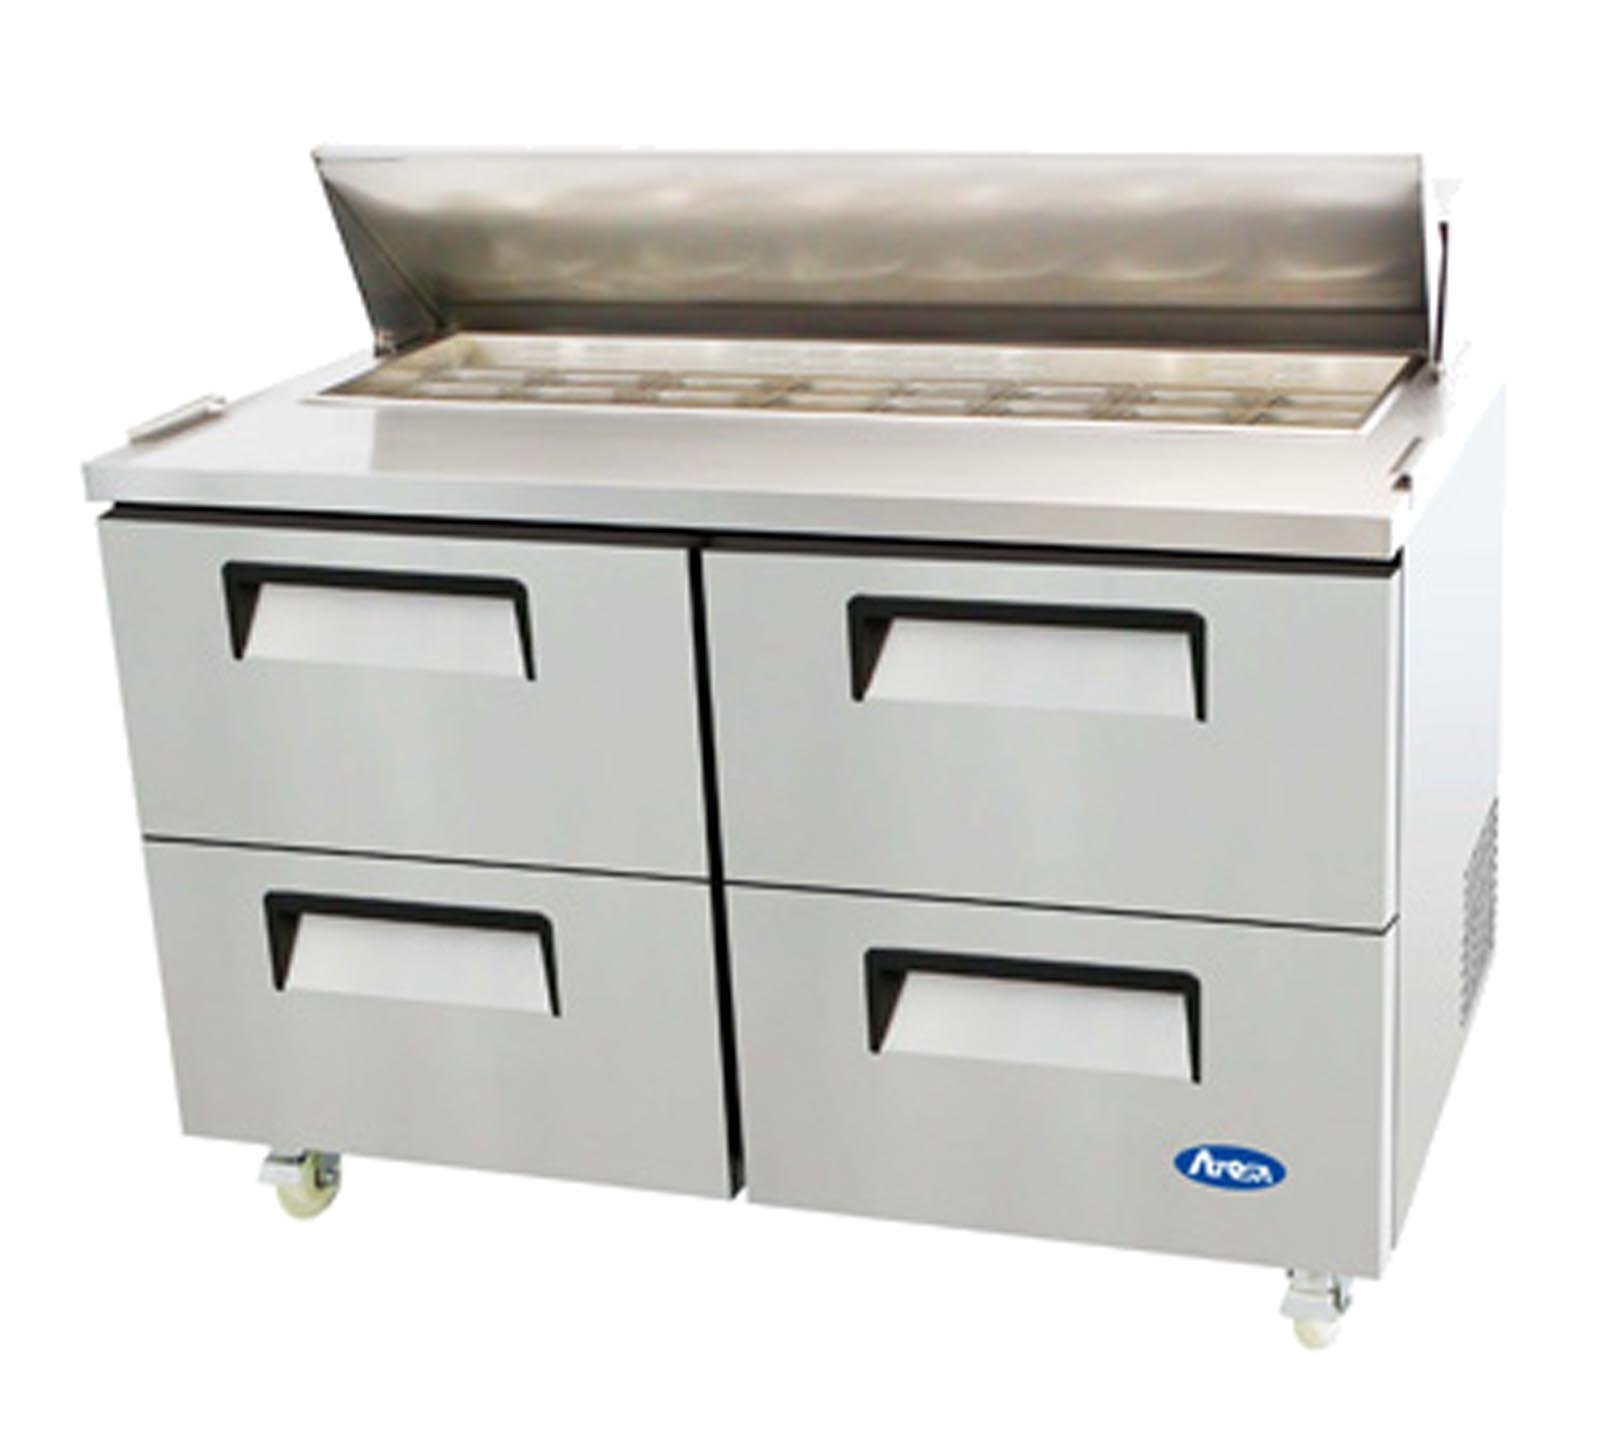 Atosa Usa MSF8313 Stainless Steel Sandwich Prep Table 60'' 4 Drawer Refrigerator